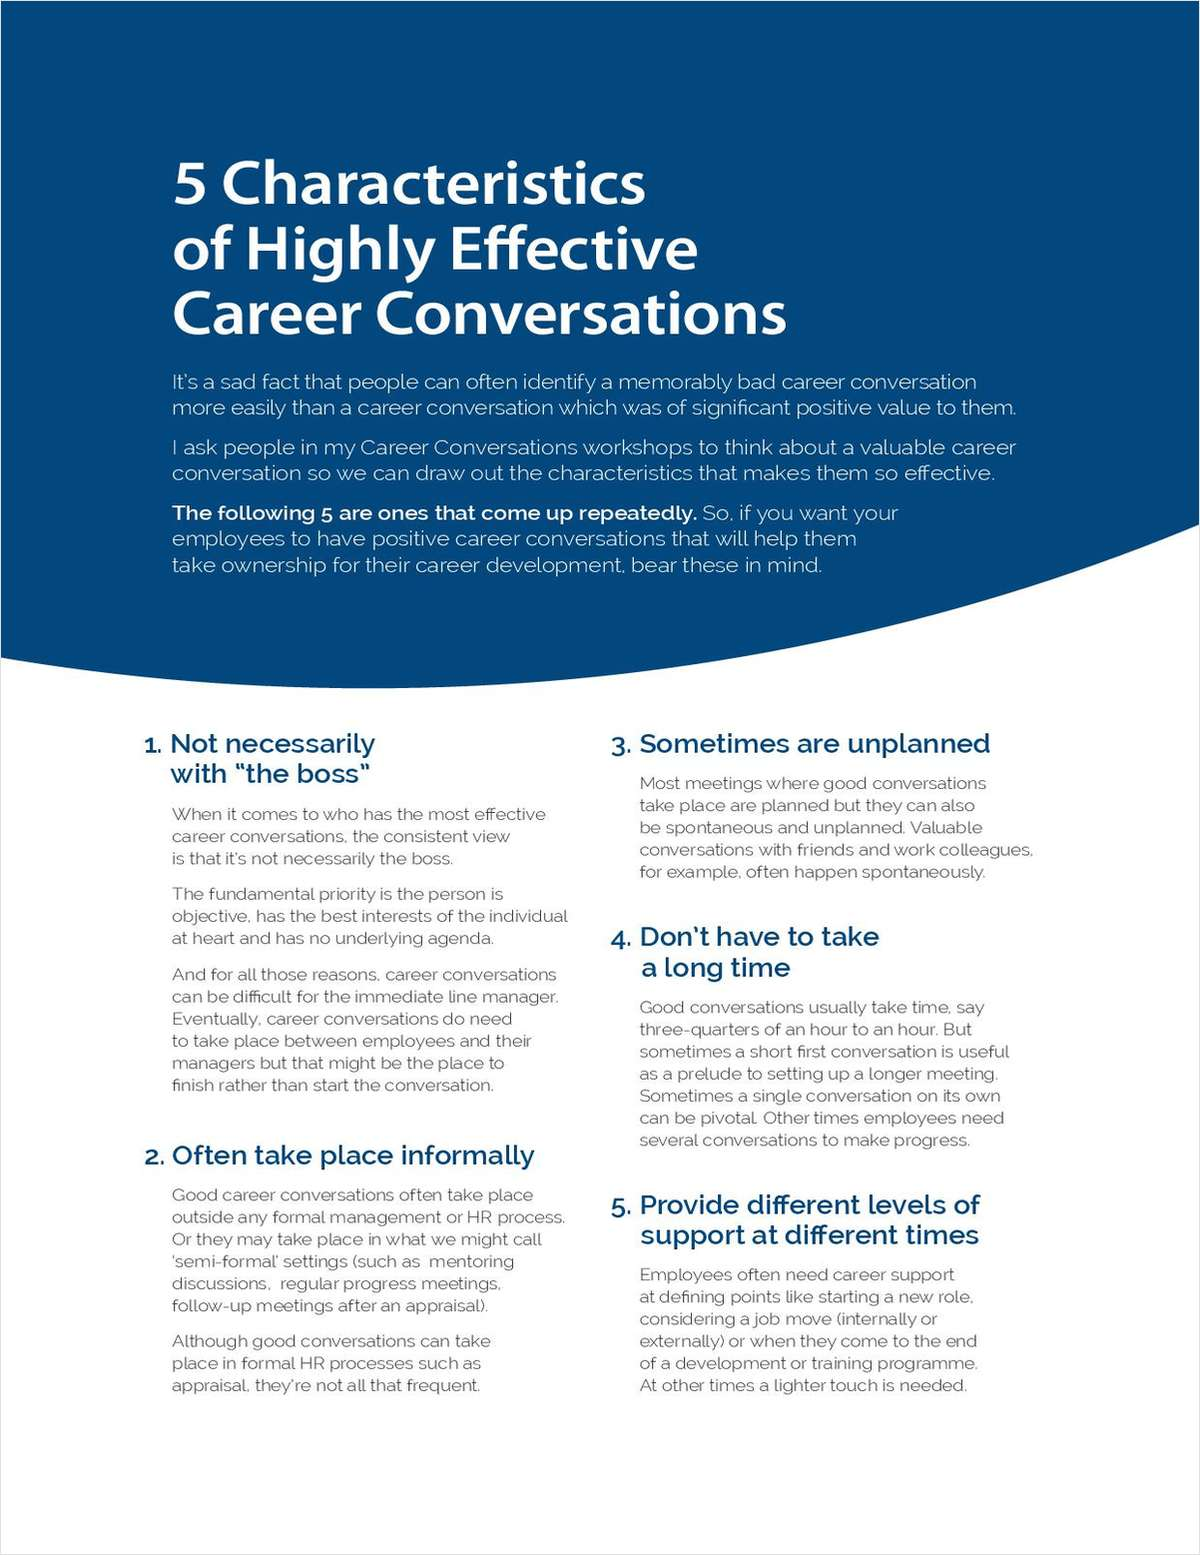 5 Characteristics of Highly Effective Career Conversations